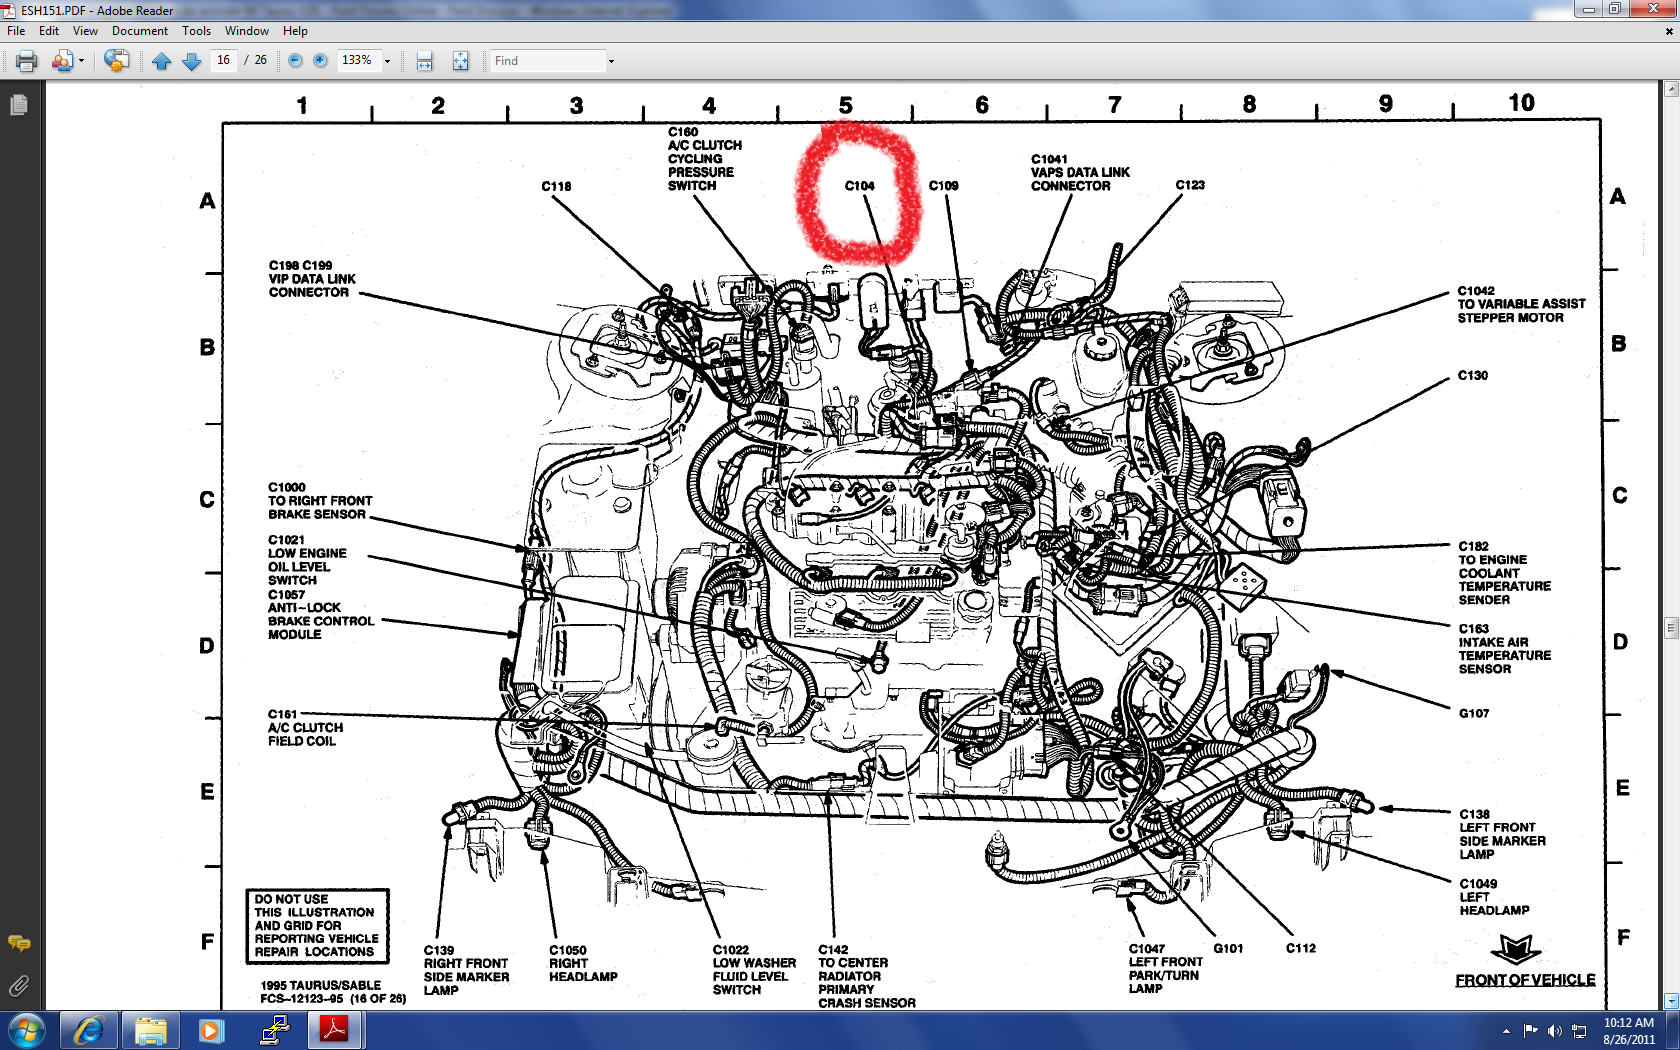 97 Taurus Engine Diagram Guide And Troubleshooting Of Wiring 2010 Ford Explorer Diagrams 95 Gl Third Level Rh 12 10 15 Jacobwinterstein Com 2004 38 V6